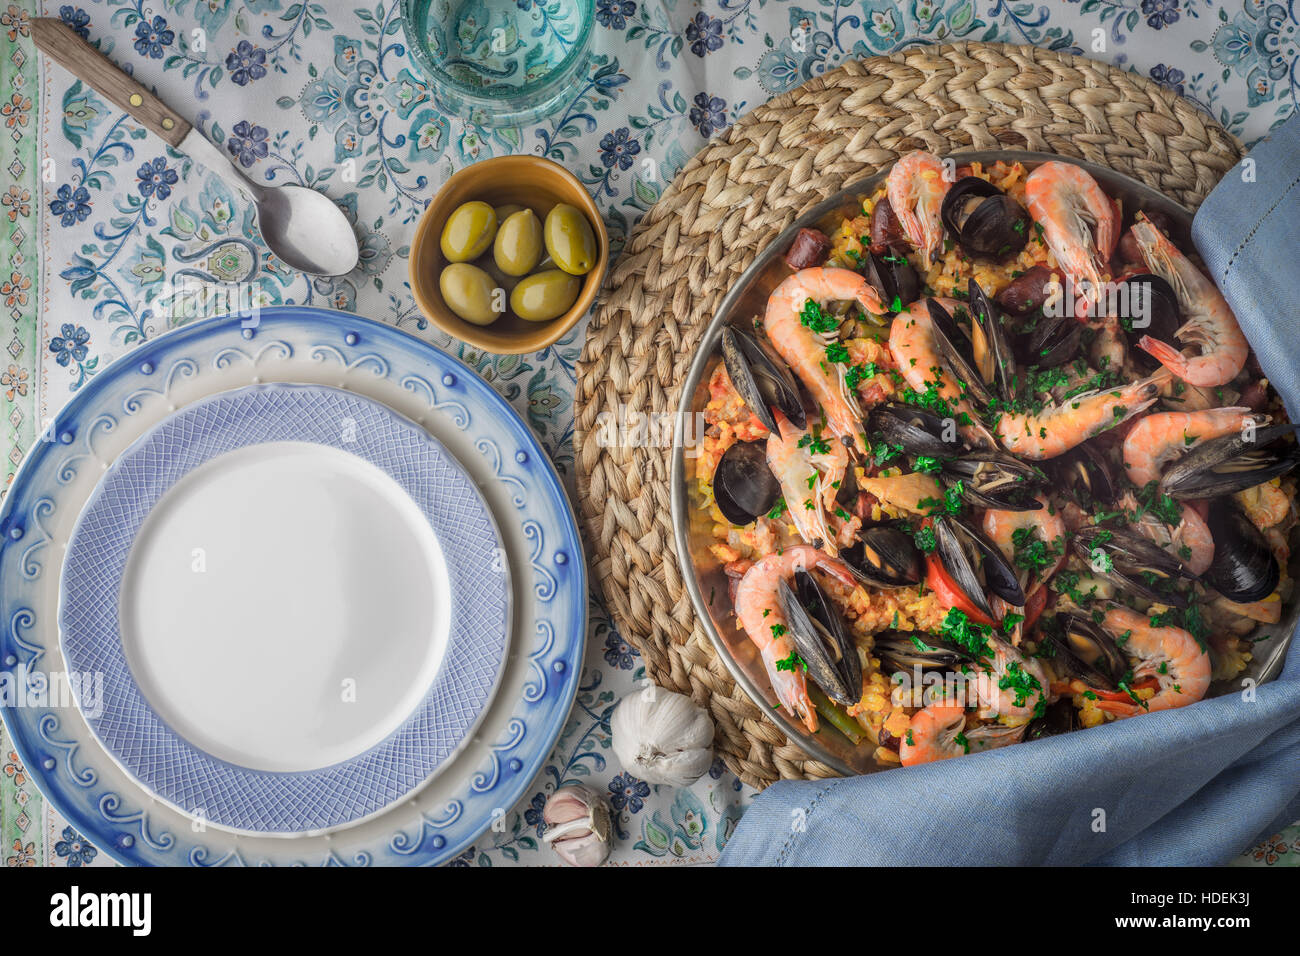 Paella on the metal plate on the beautiful napkin with tableware top view - Stock Image